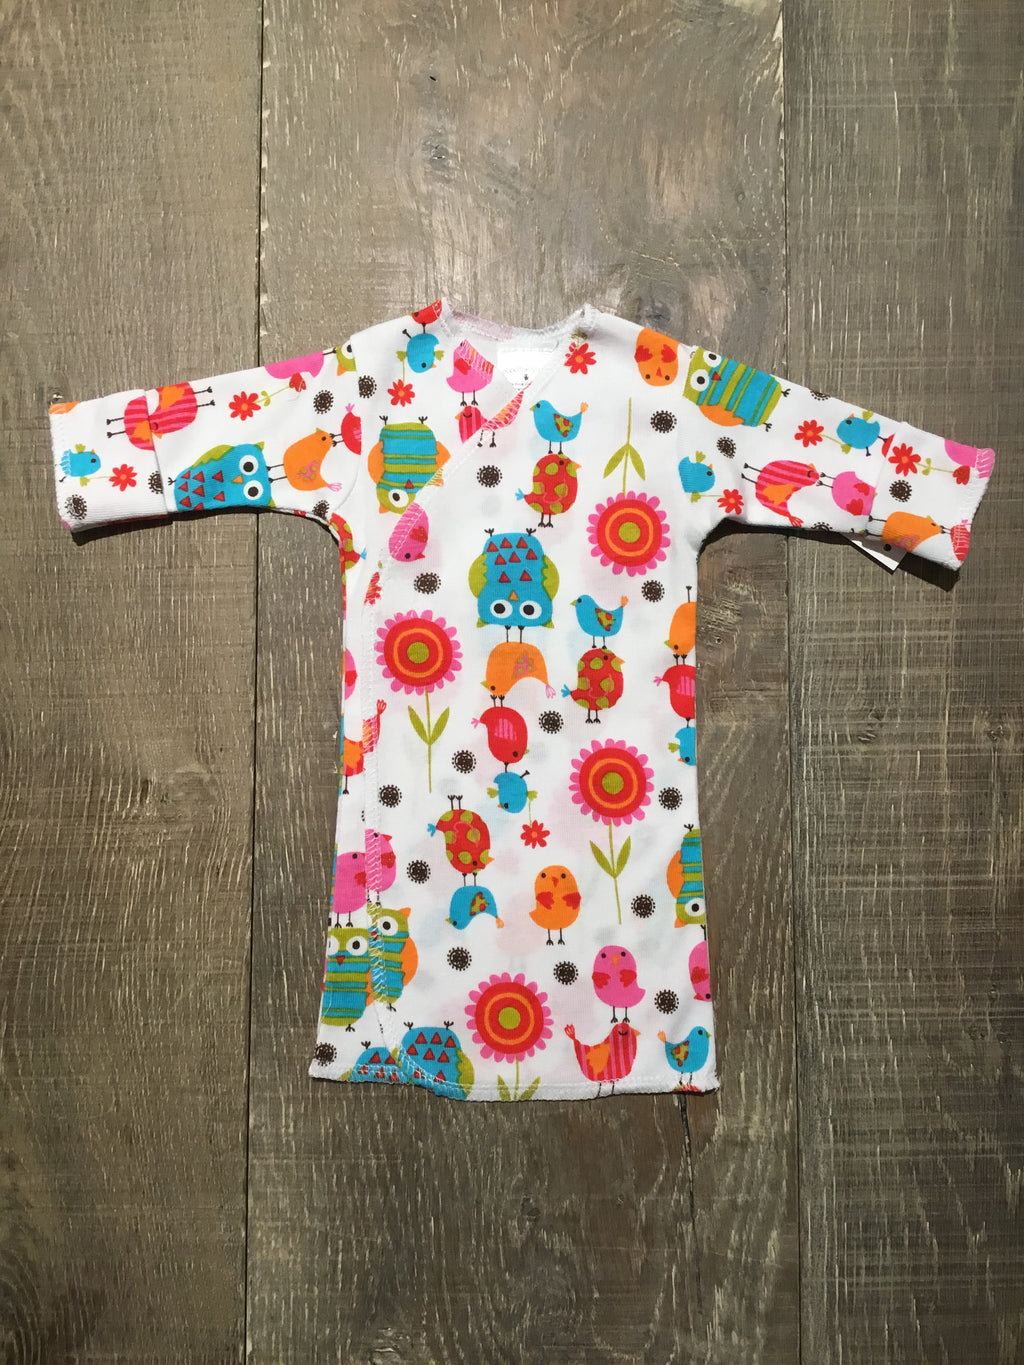 Krazy Birds Preemie Long Shirt